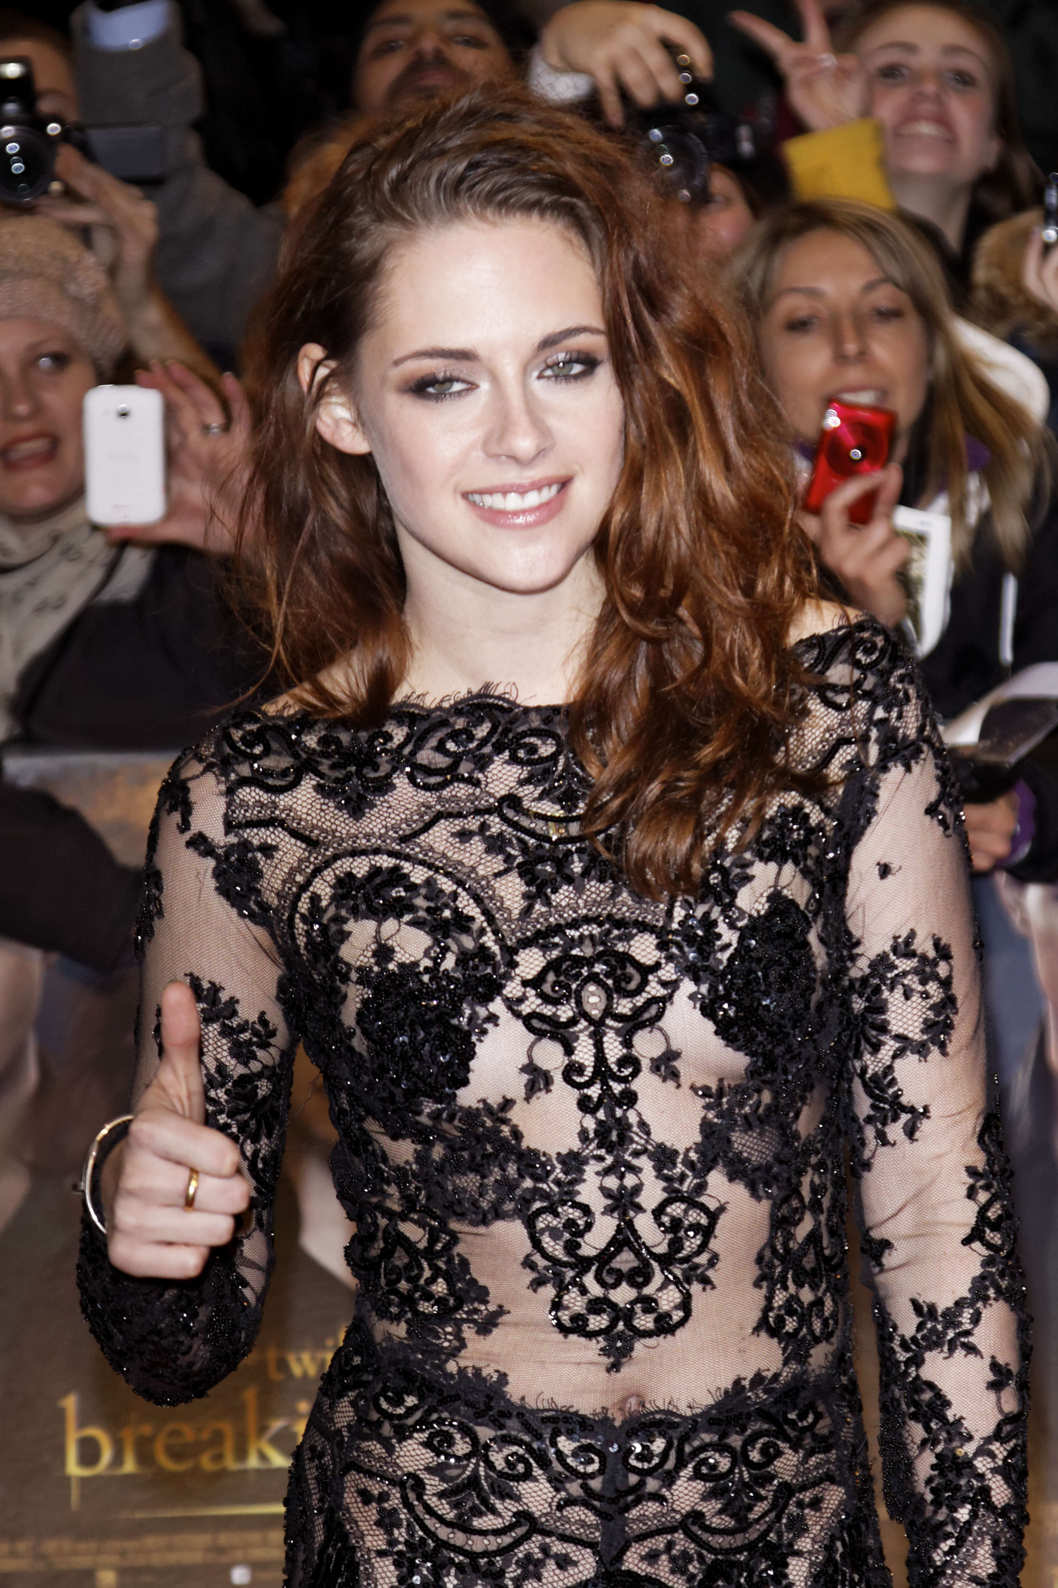 Red carpet arrivals at 'The Twilight Saga: Breaking Dawn 2 - Part 2' European premiere at the Empire Leicester Square.